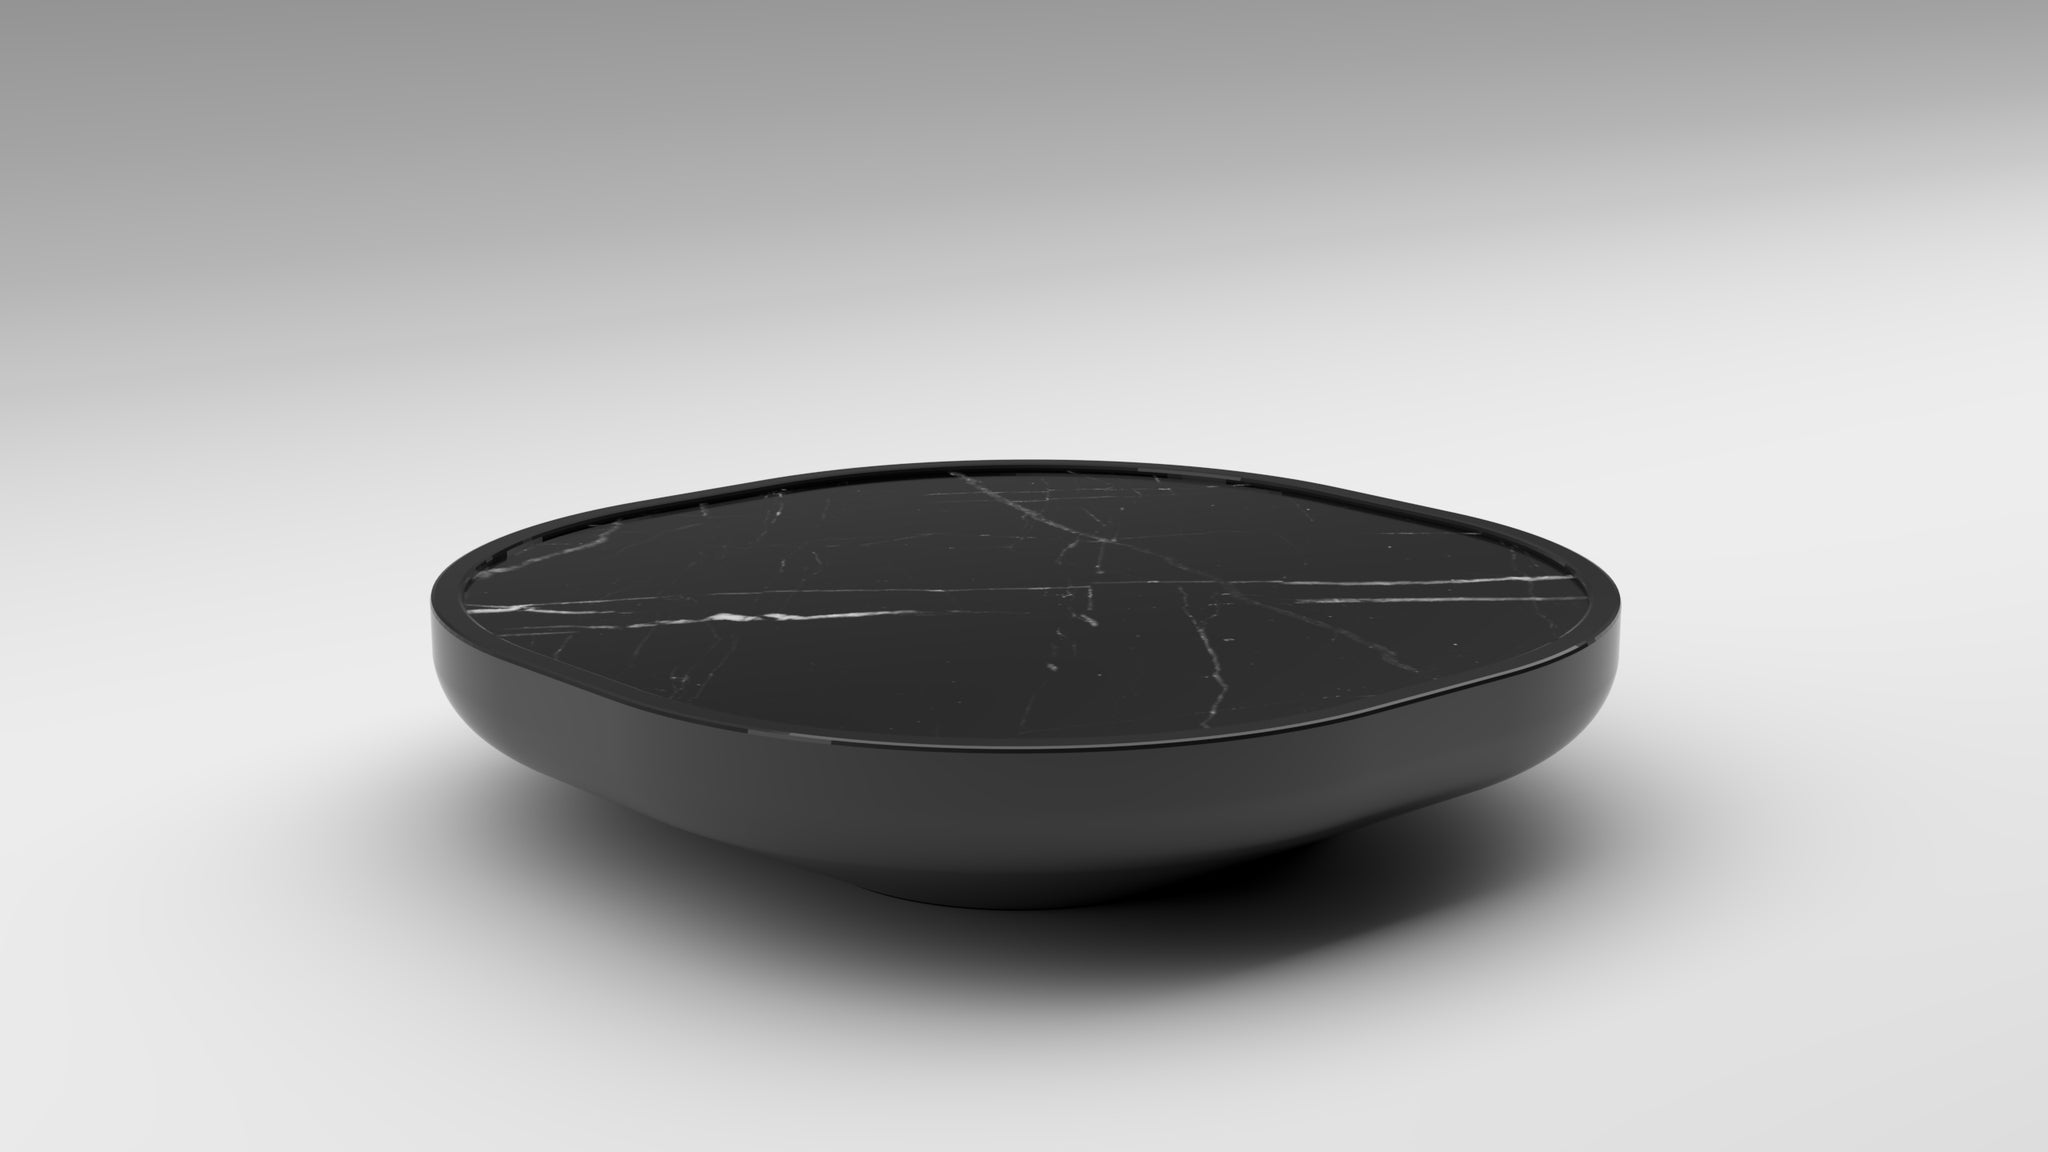 black coffee table, low coffee table, black marble, akar iris, iris mini, iris mini table, black lacquer, glossy black, black marble, akar fine lacquer, akar lacquer process